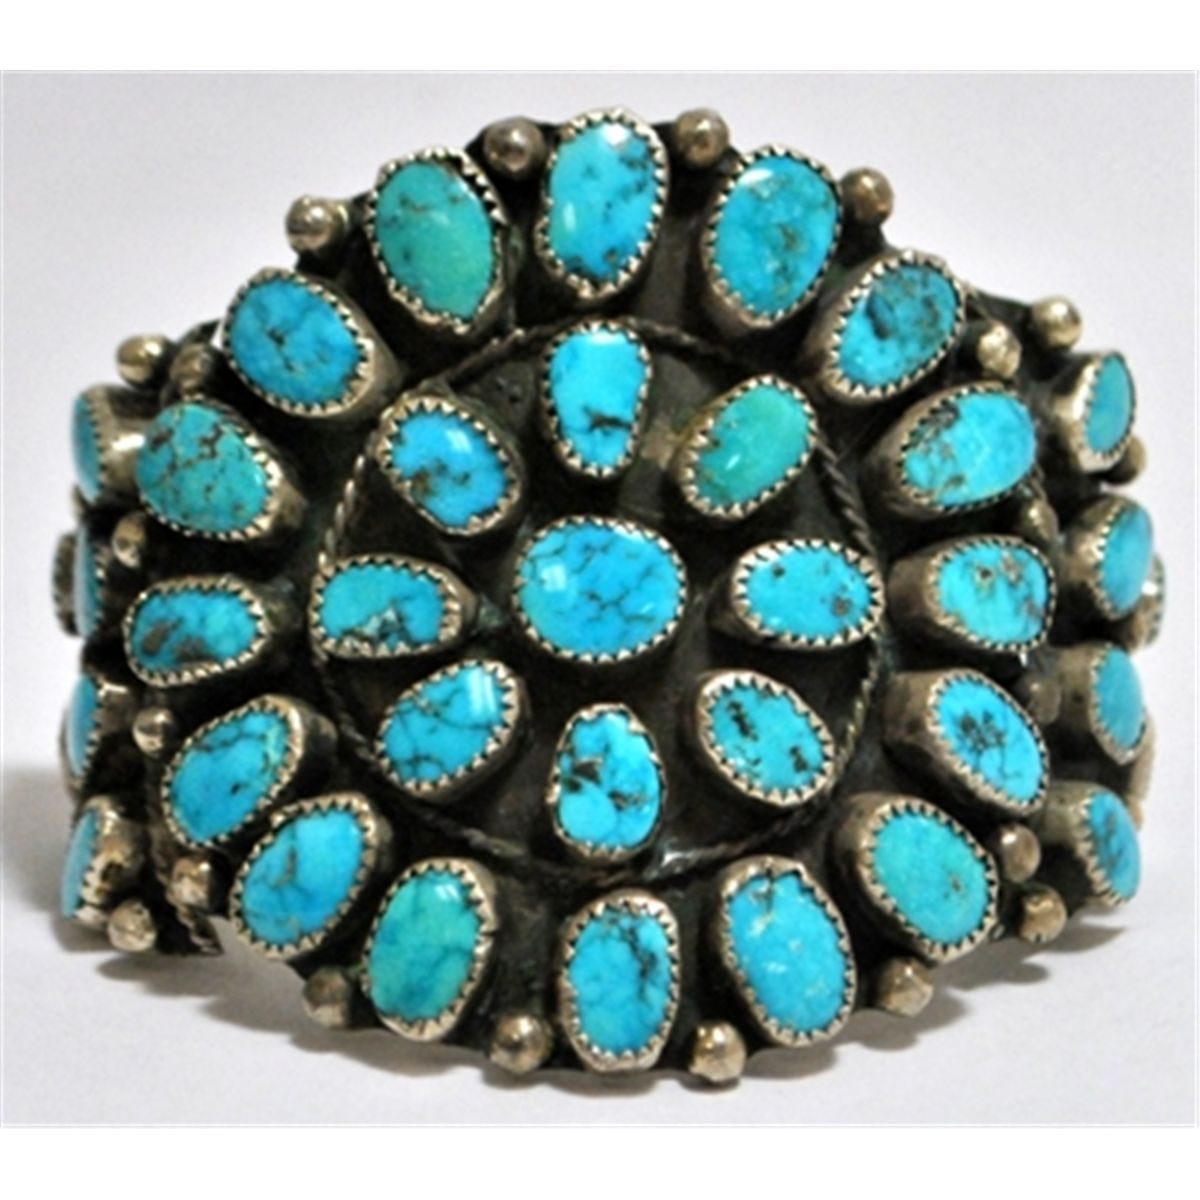 Old Pawn Spider Web Kingman Turquoise Needlepoint Sterling Silver Cuff Bracelet